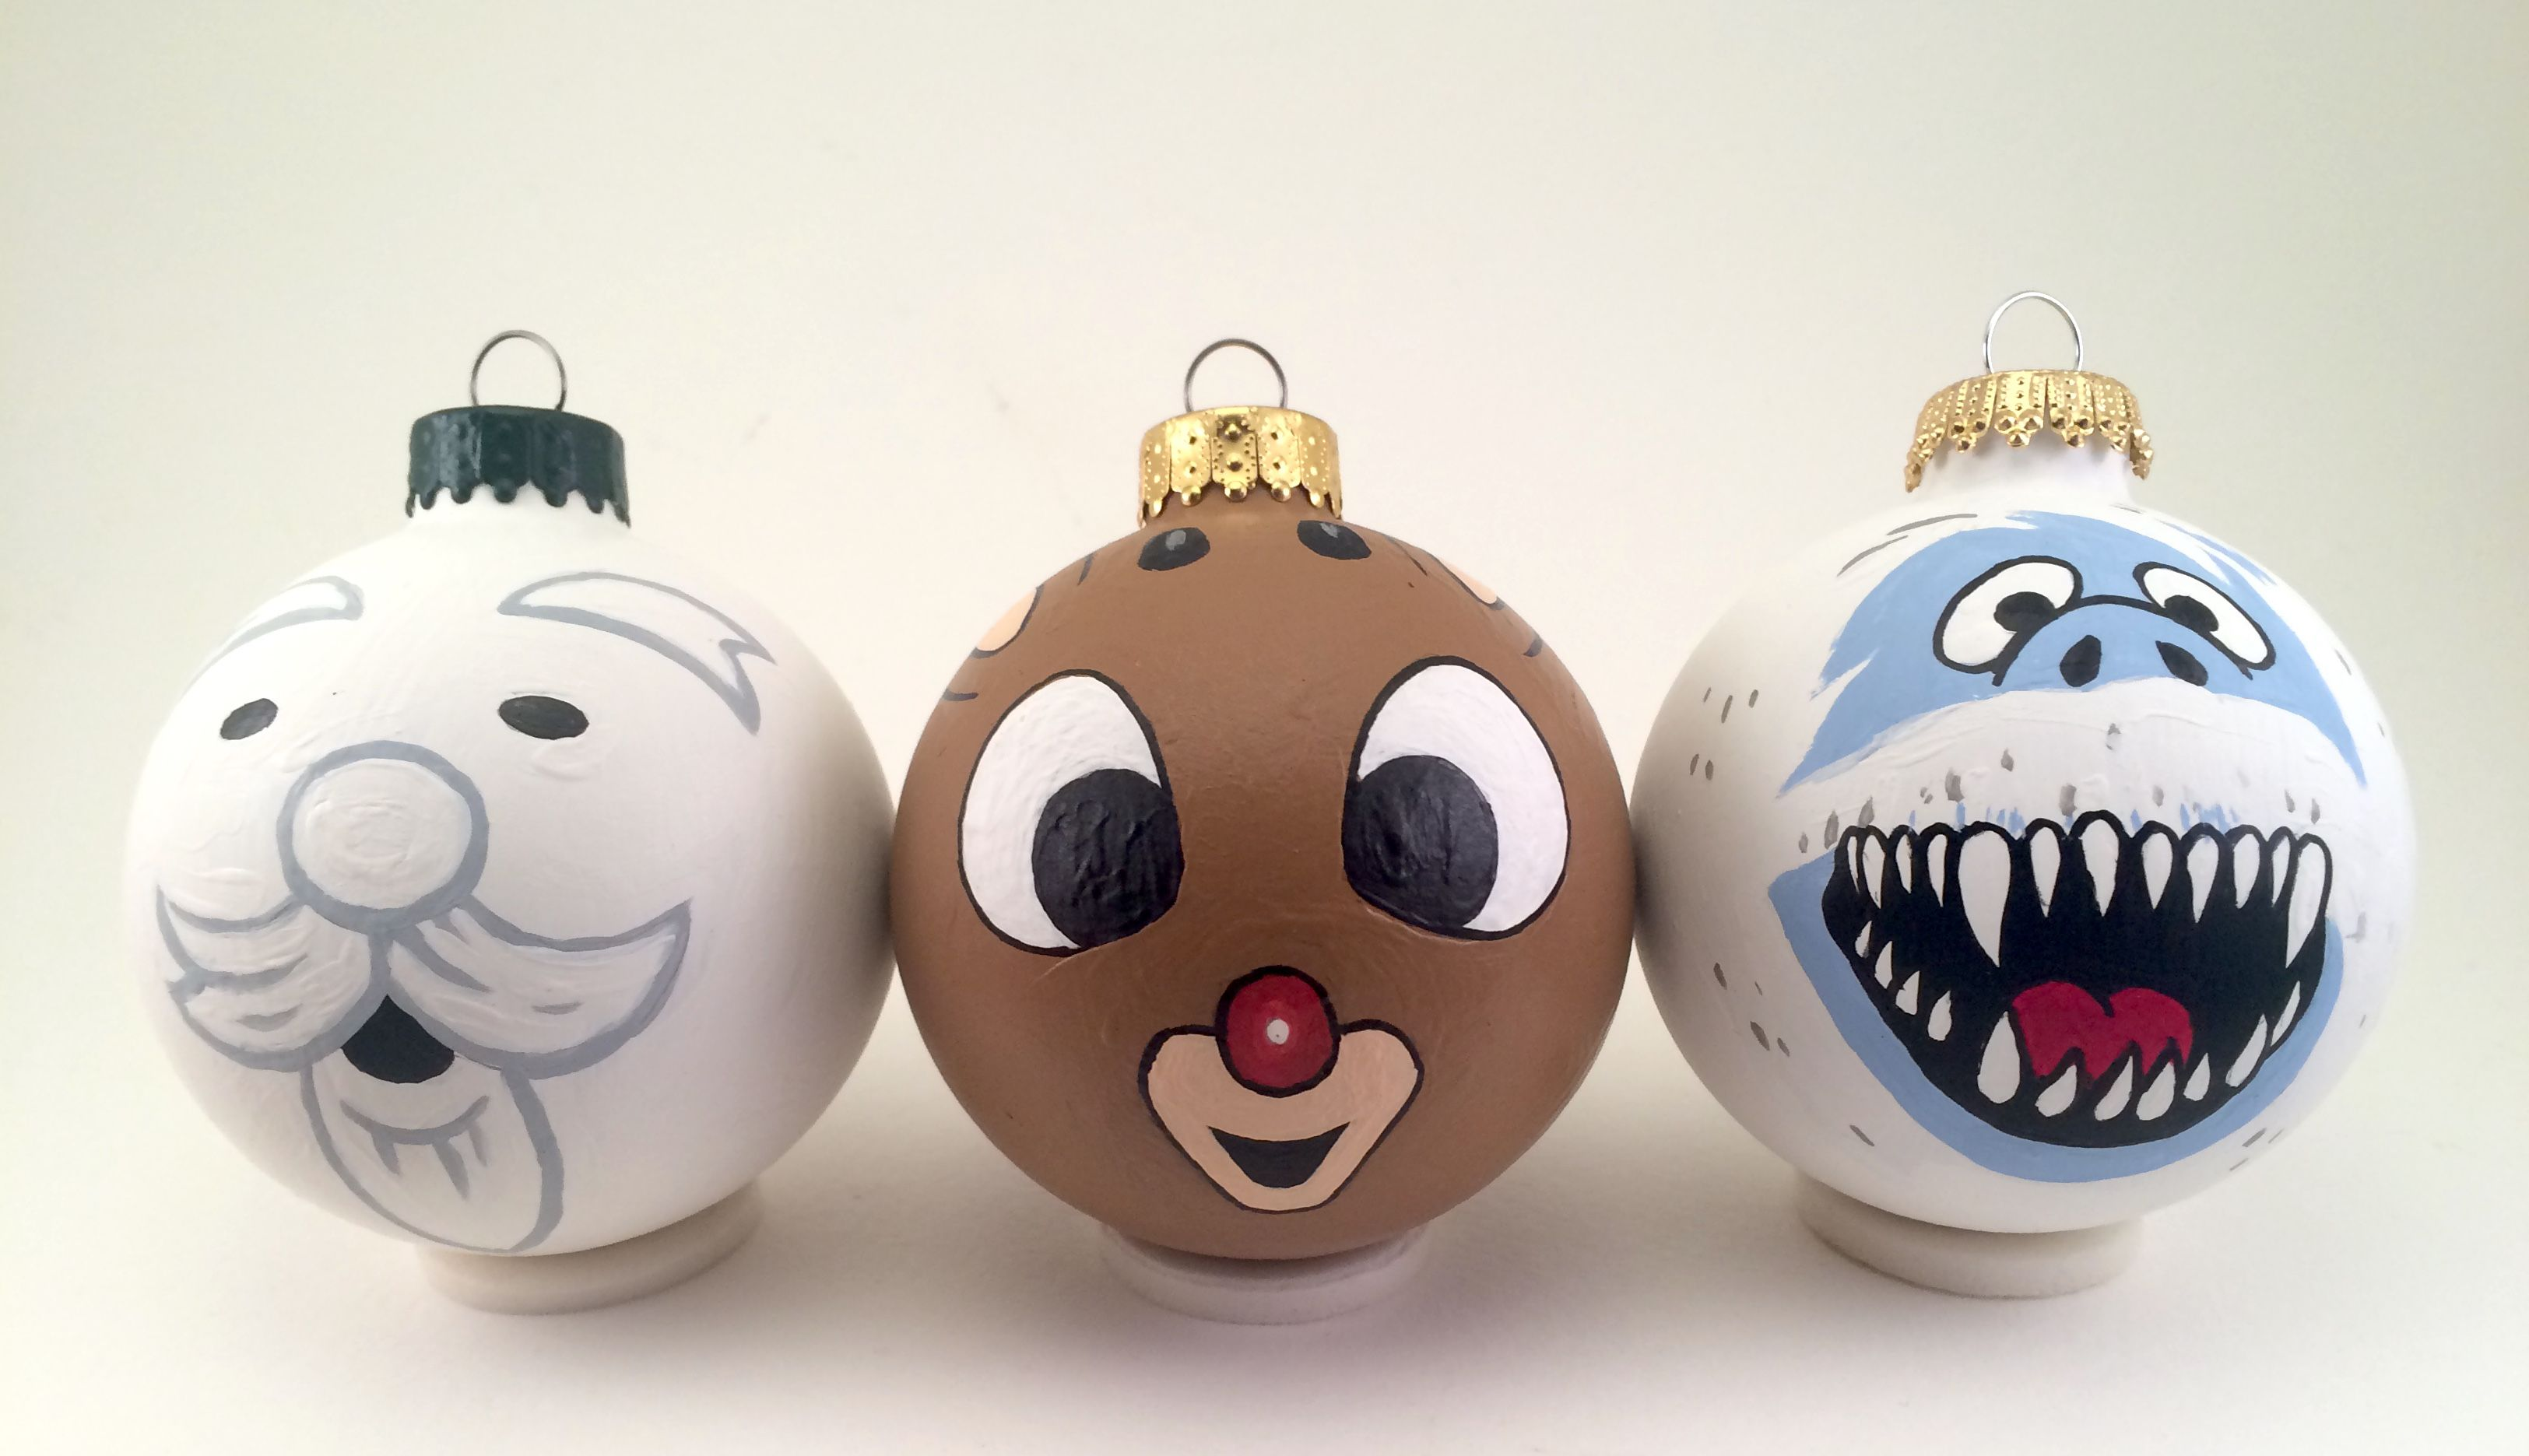 This Is A Hand Painted Ornament Set Inspired By The Holiday Classic Rudolph The Red Nosed Reindee Light Bulb Ornaments Painted Ornaments Hand Painted Ornaments